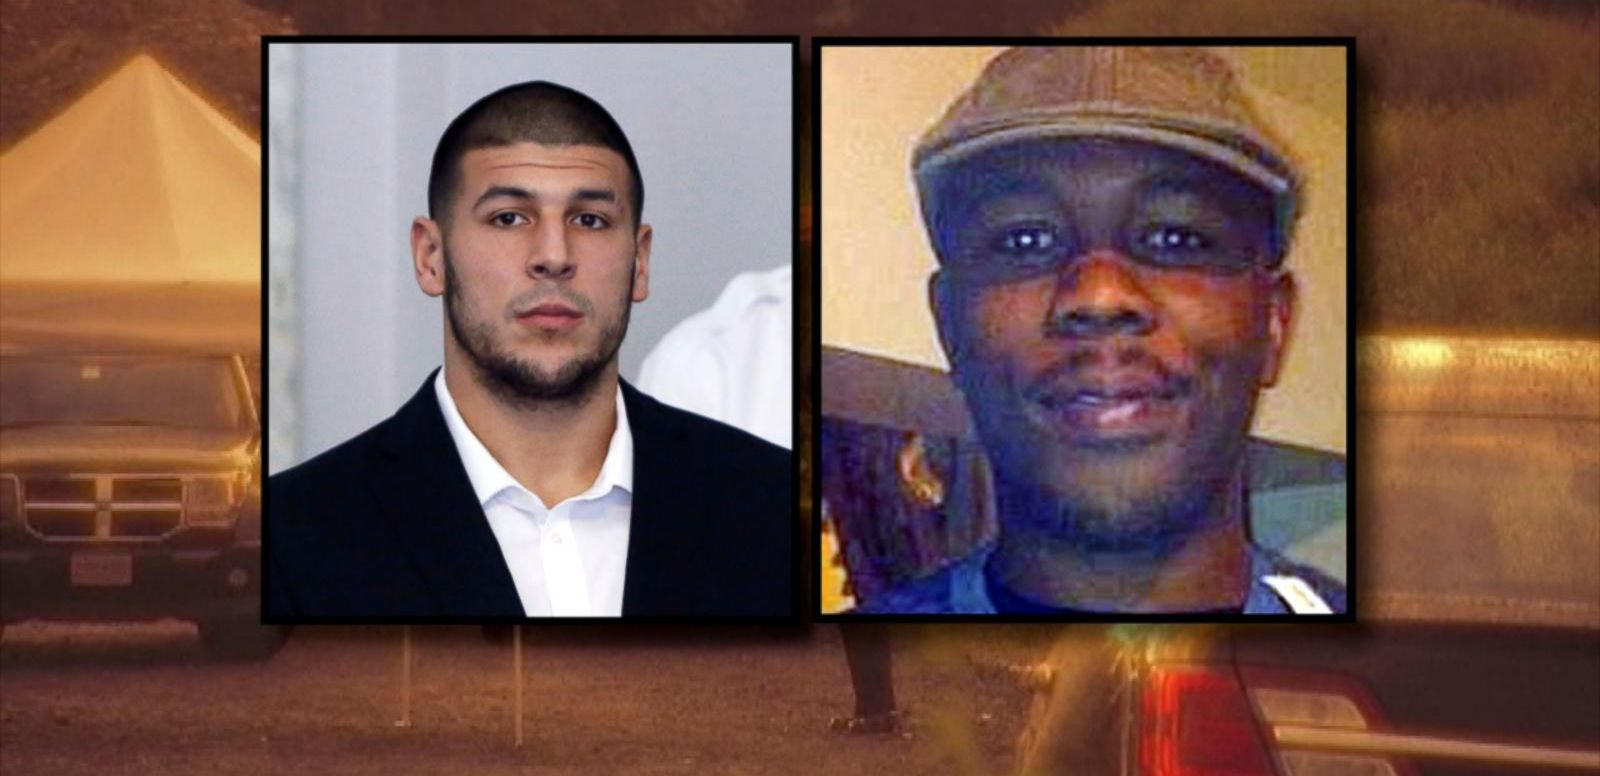 VIDEO: Aaron Hernandez Trial Gets Underway